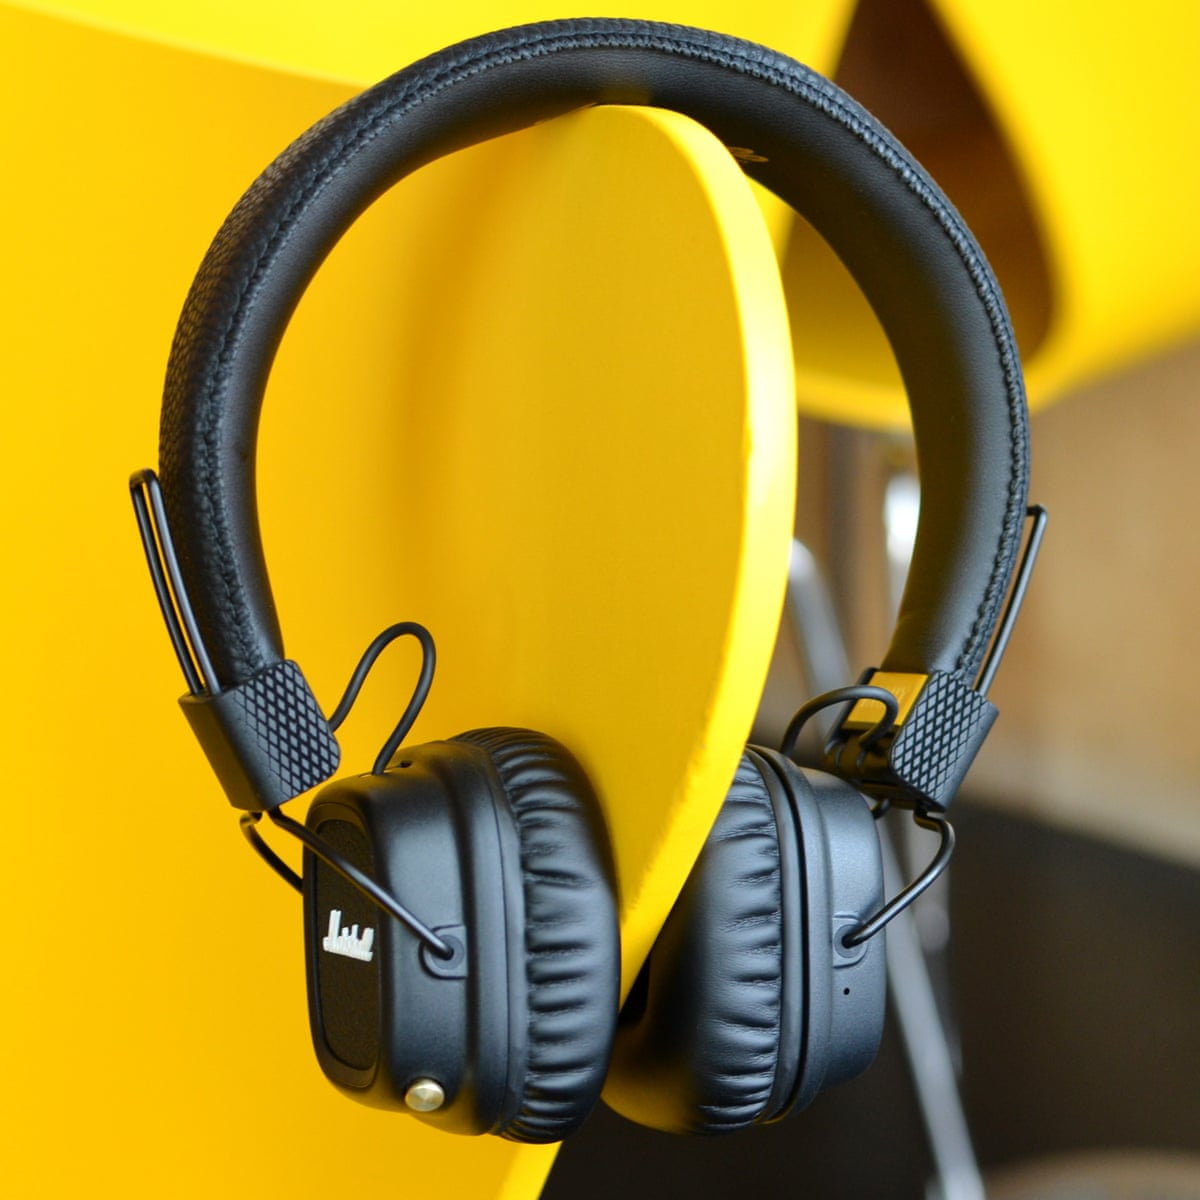 Marshall Major Ii Bluetooth Headphones They Last For Ages And Sound Great Too Headphones The Guardian